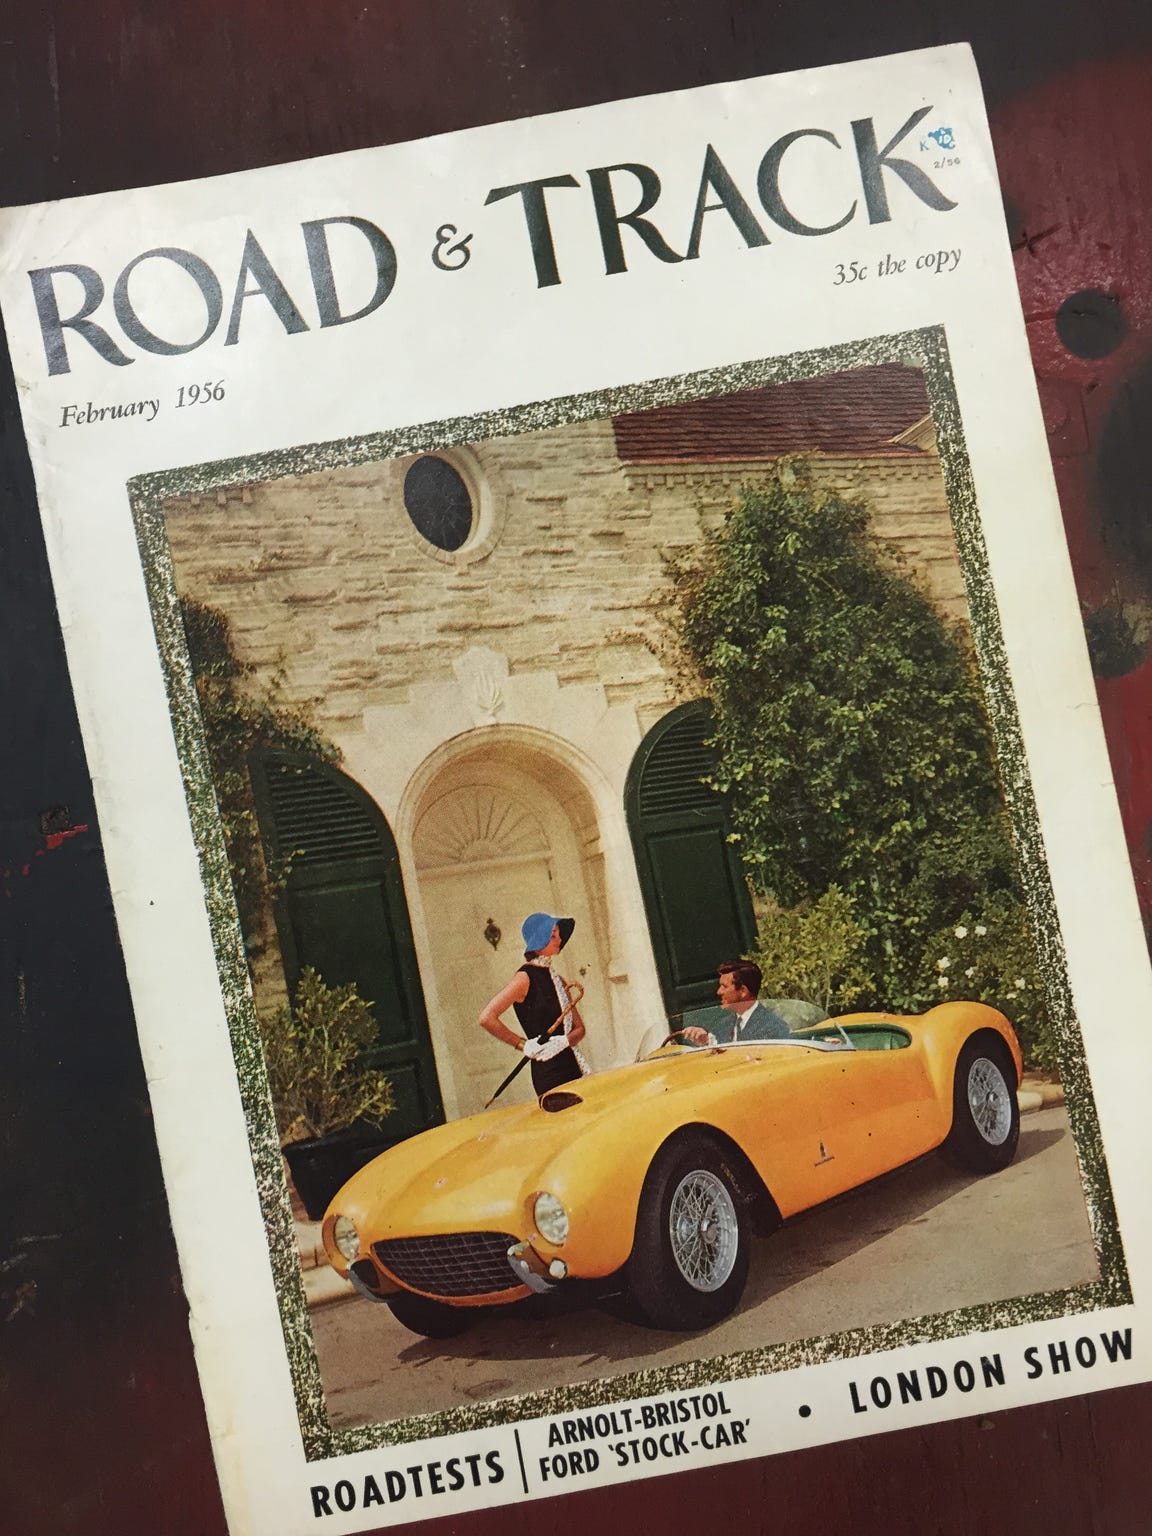 This bright yellow Arnolt-Bristol graced the cover